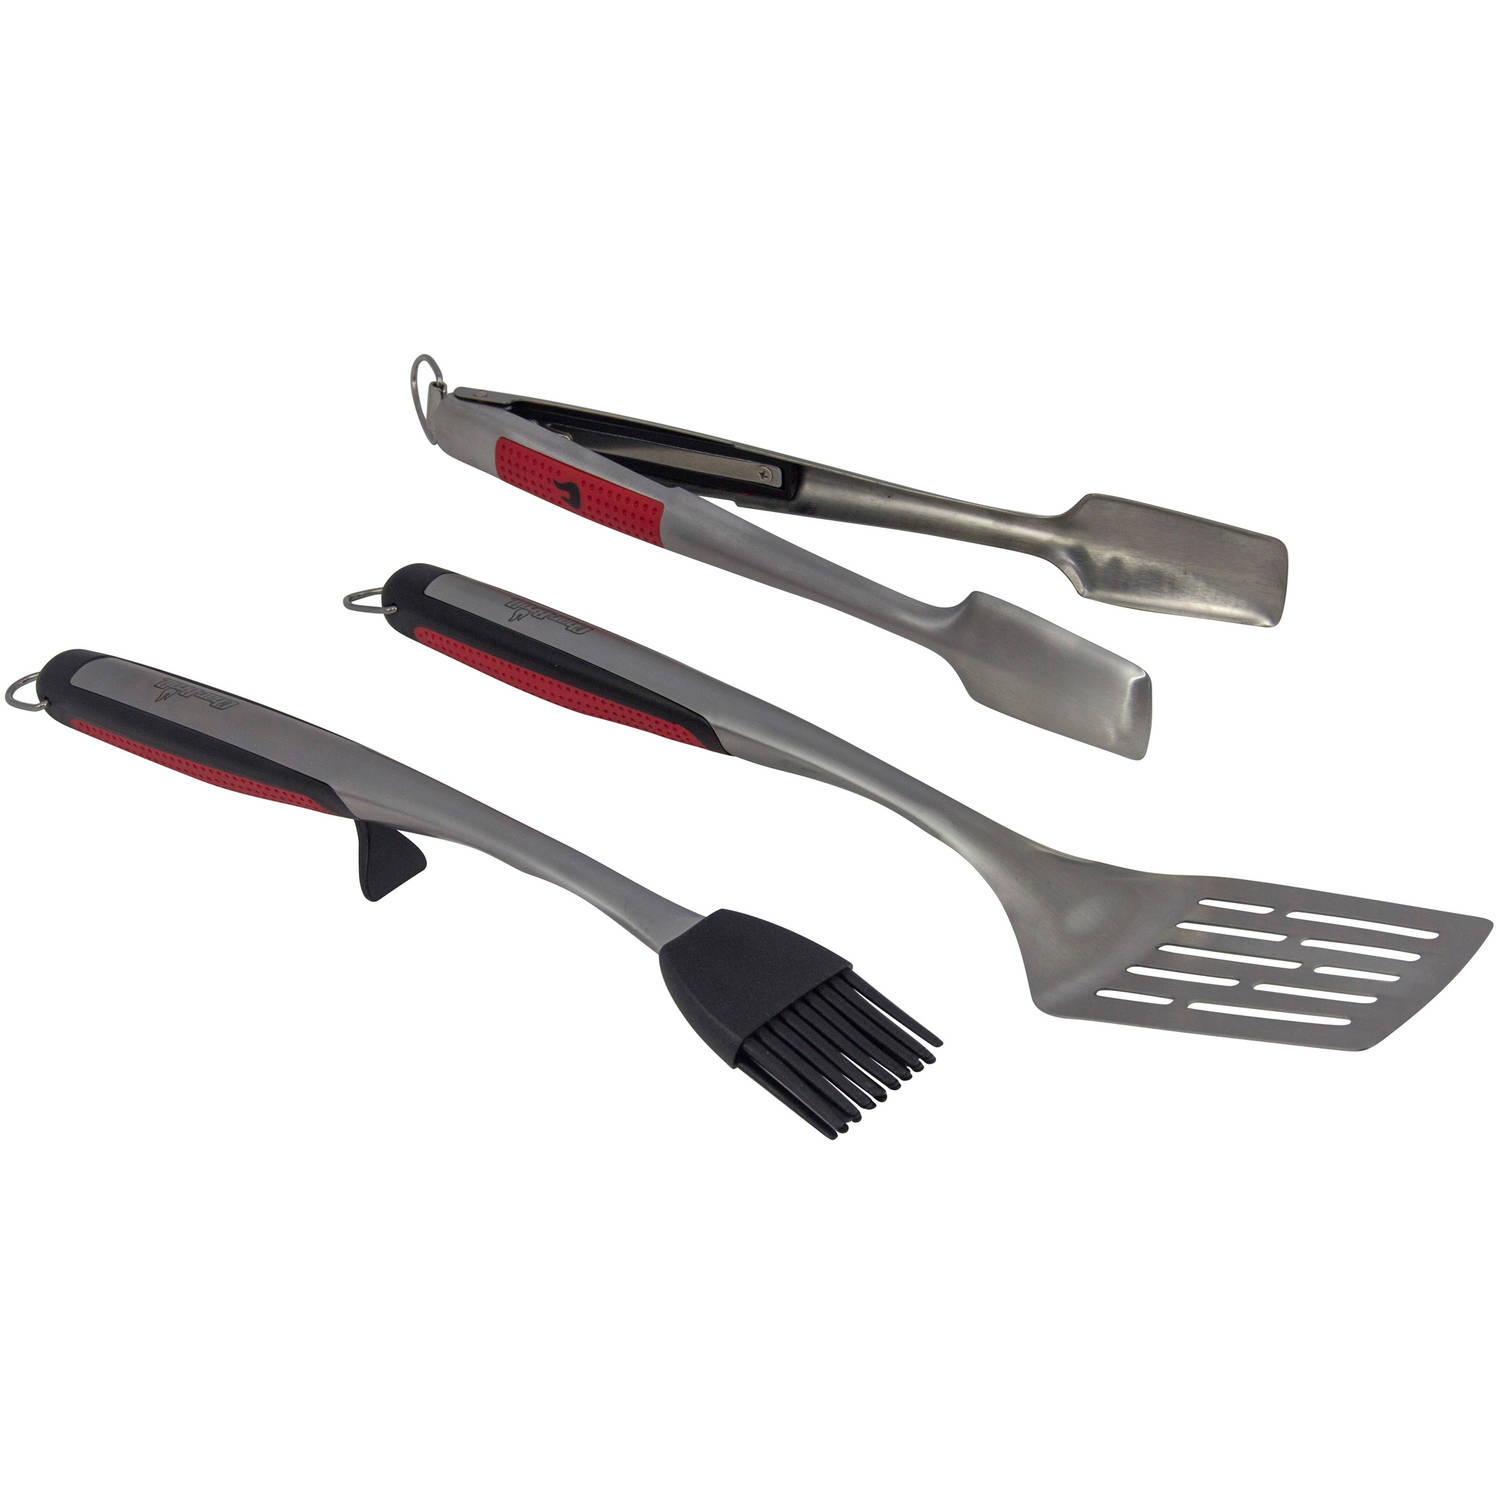 Char-Broil Comfort-Grip 3-Piece Tool Set